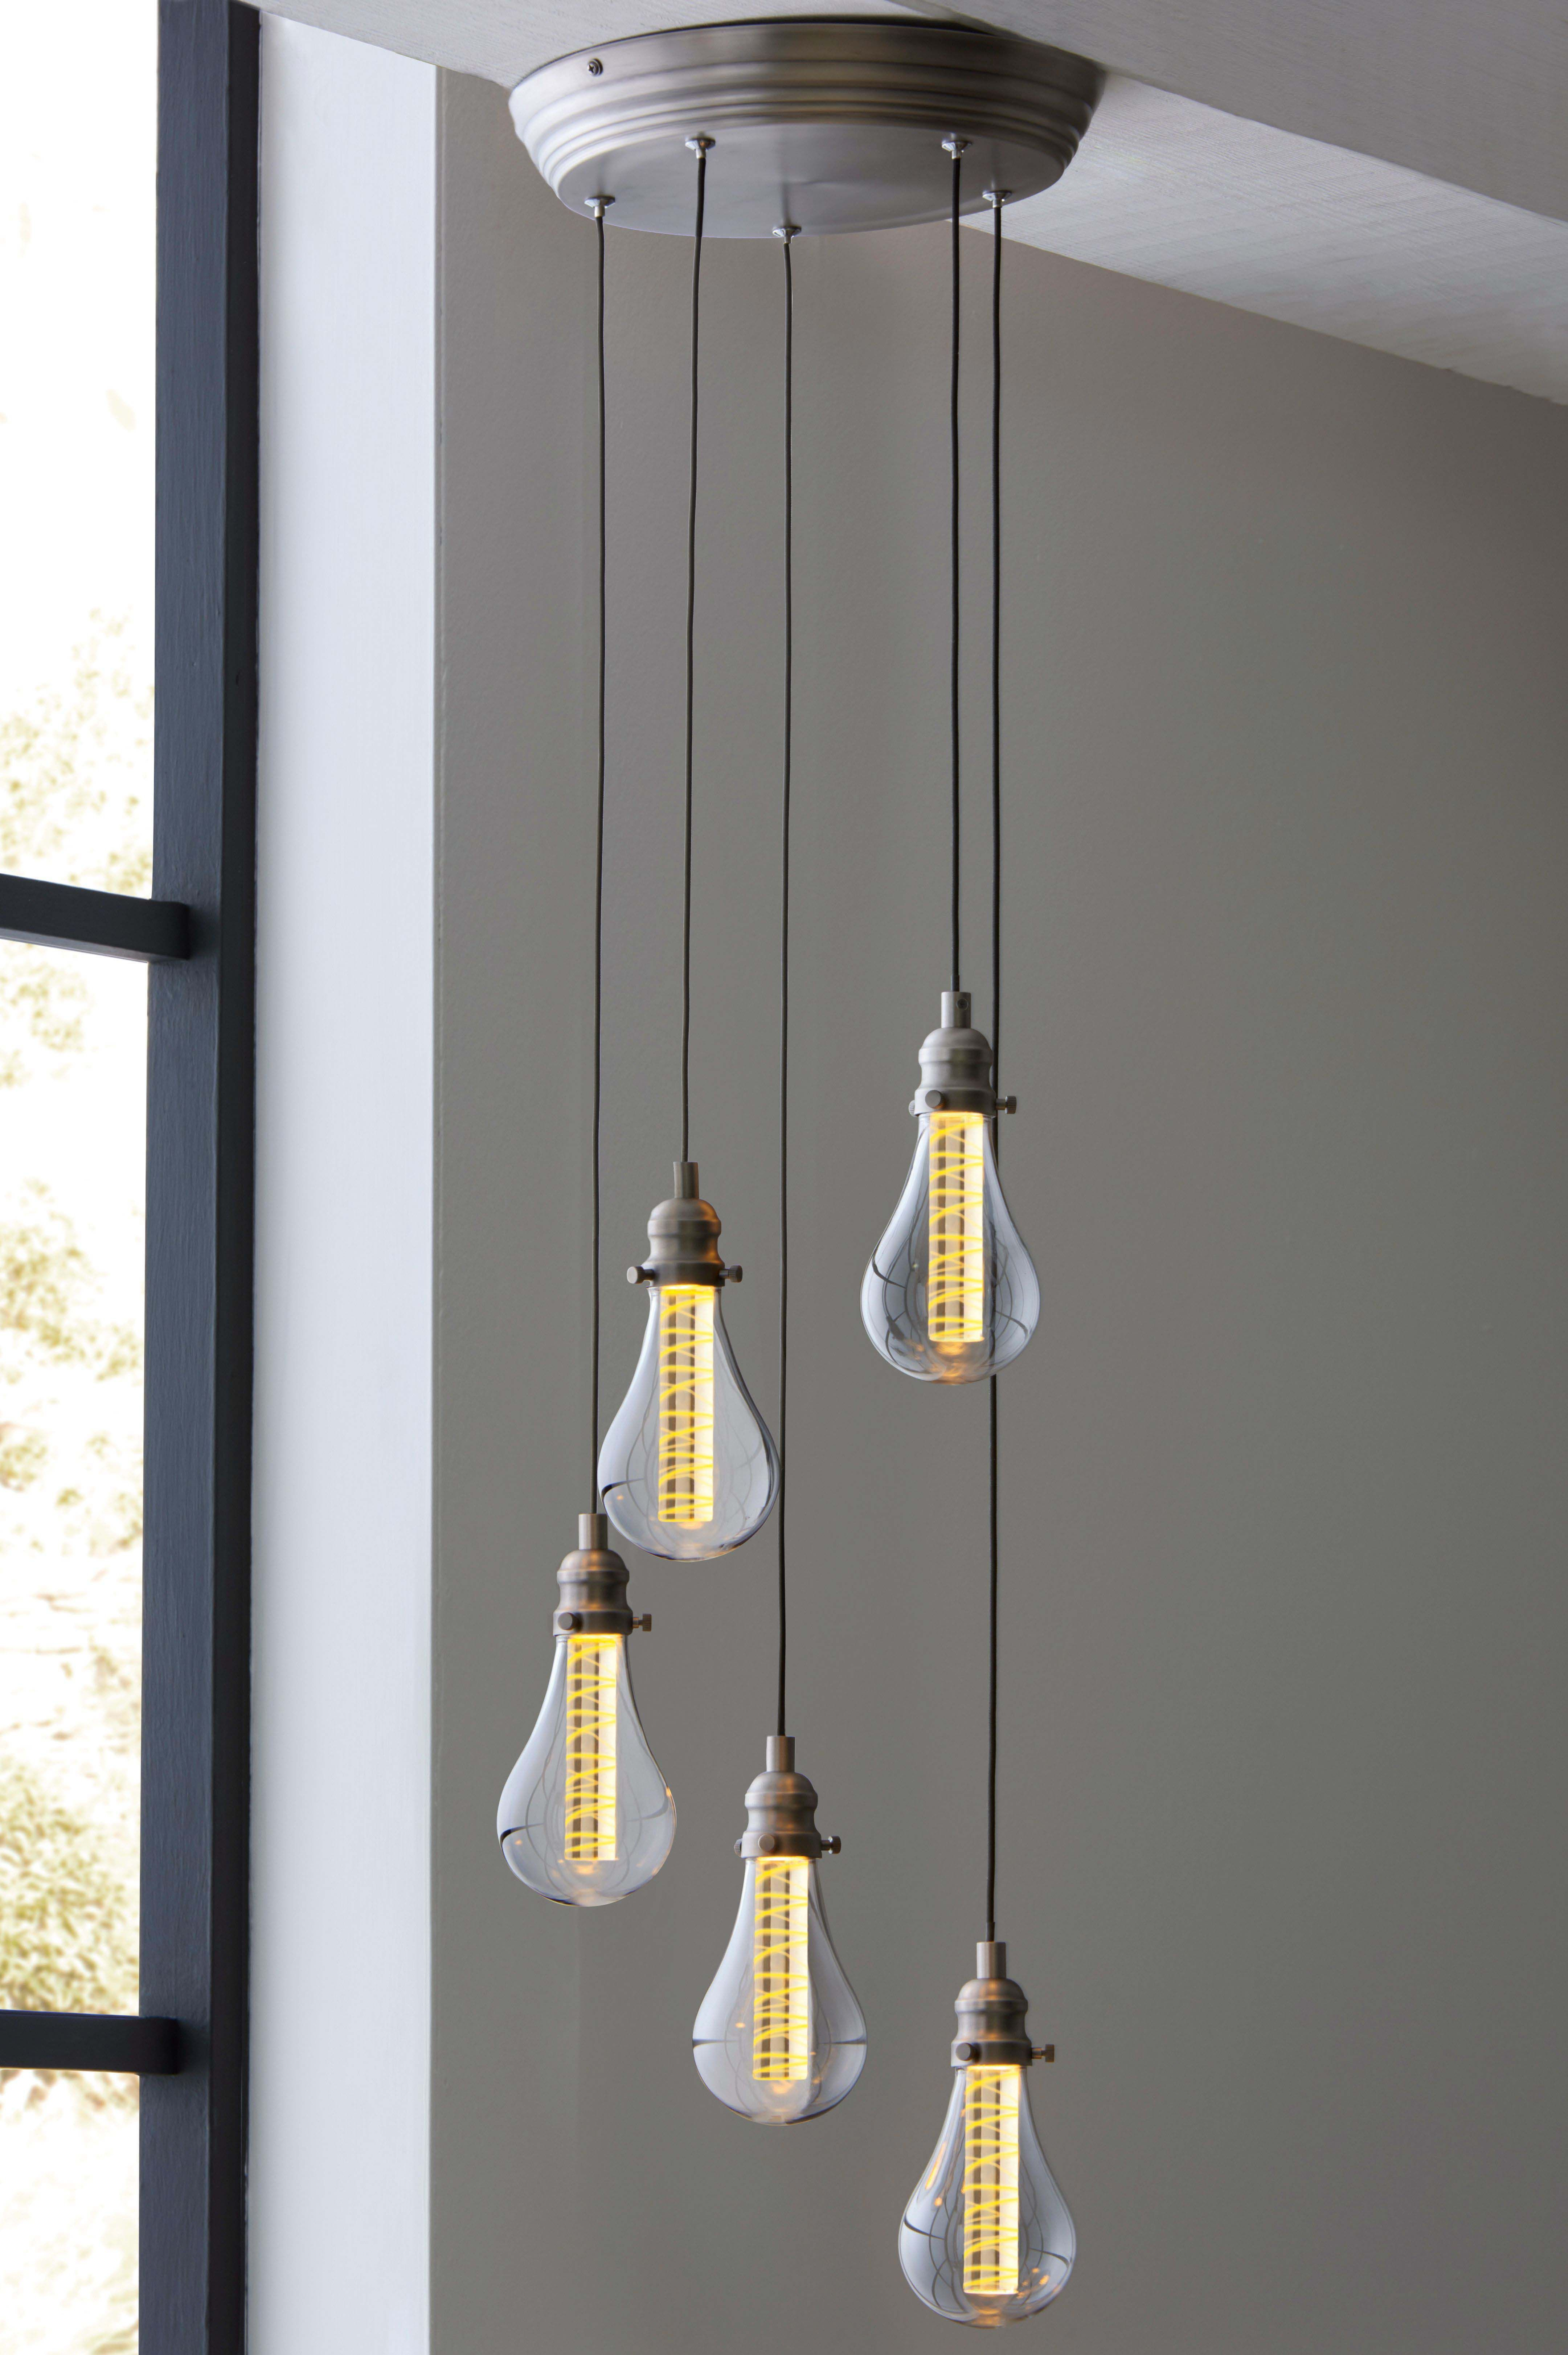 Next Staten Led 5 Light Cluster Pendant - Pewter | Déco with regard to Berenice 3-Light Cluster Teardrop Pendants (Image 21 of 30)